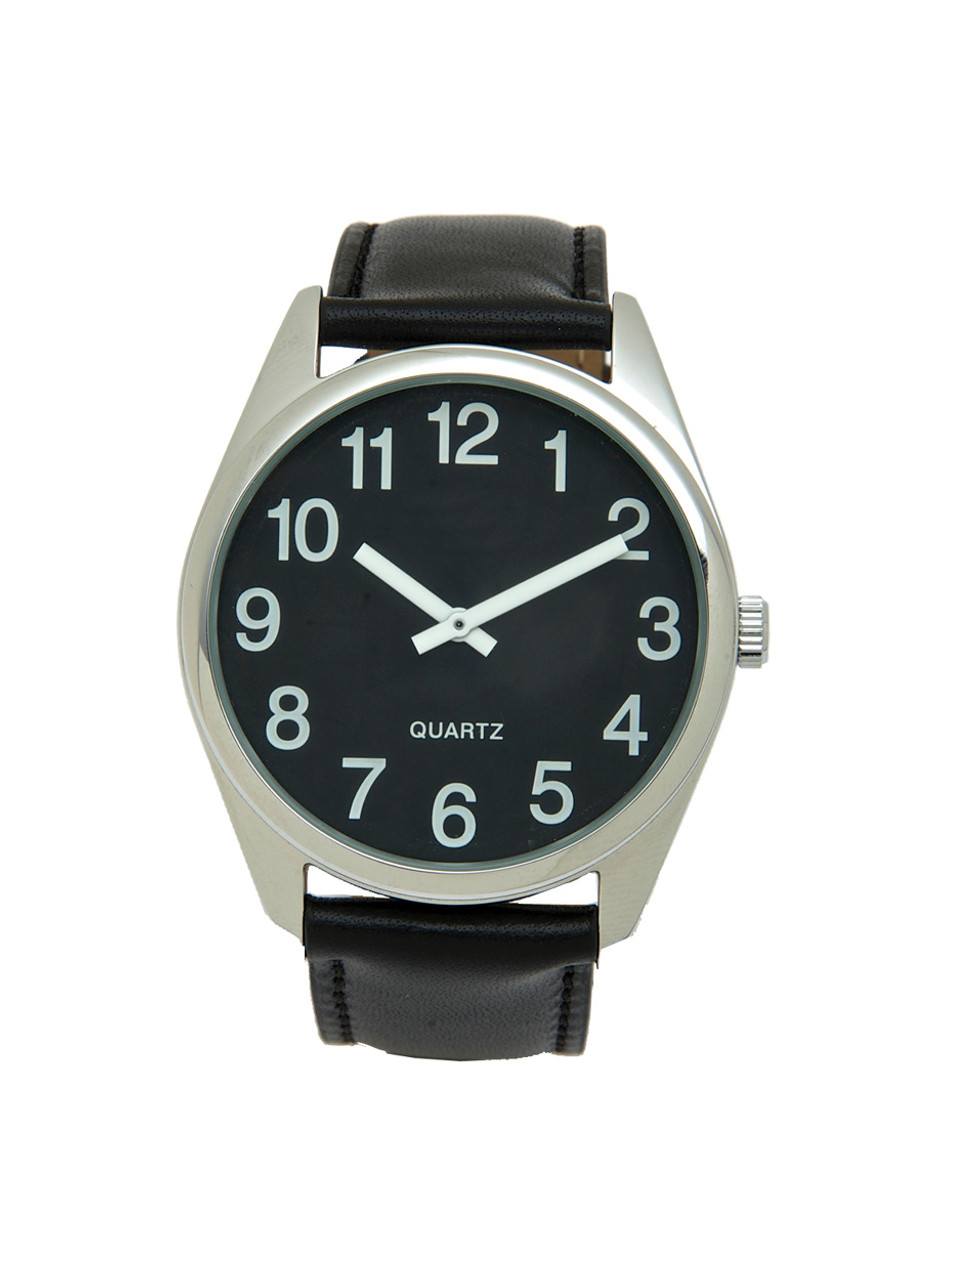 Low Vision Silver Tone Watch with Black Face and Leather Band